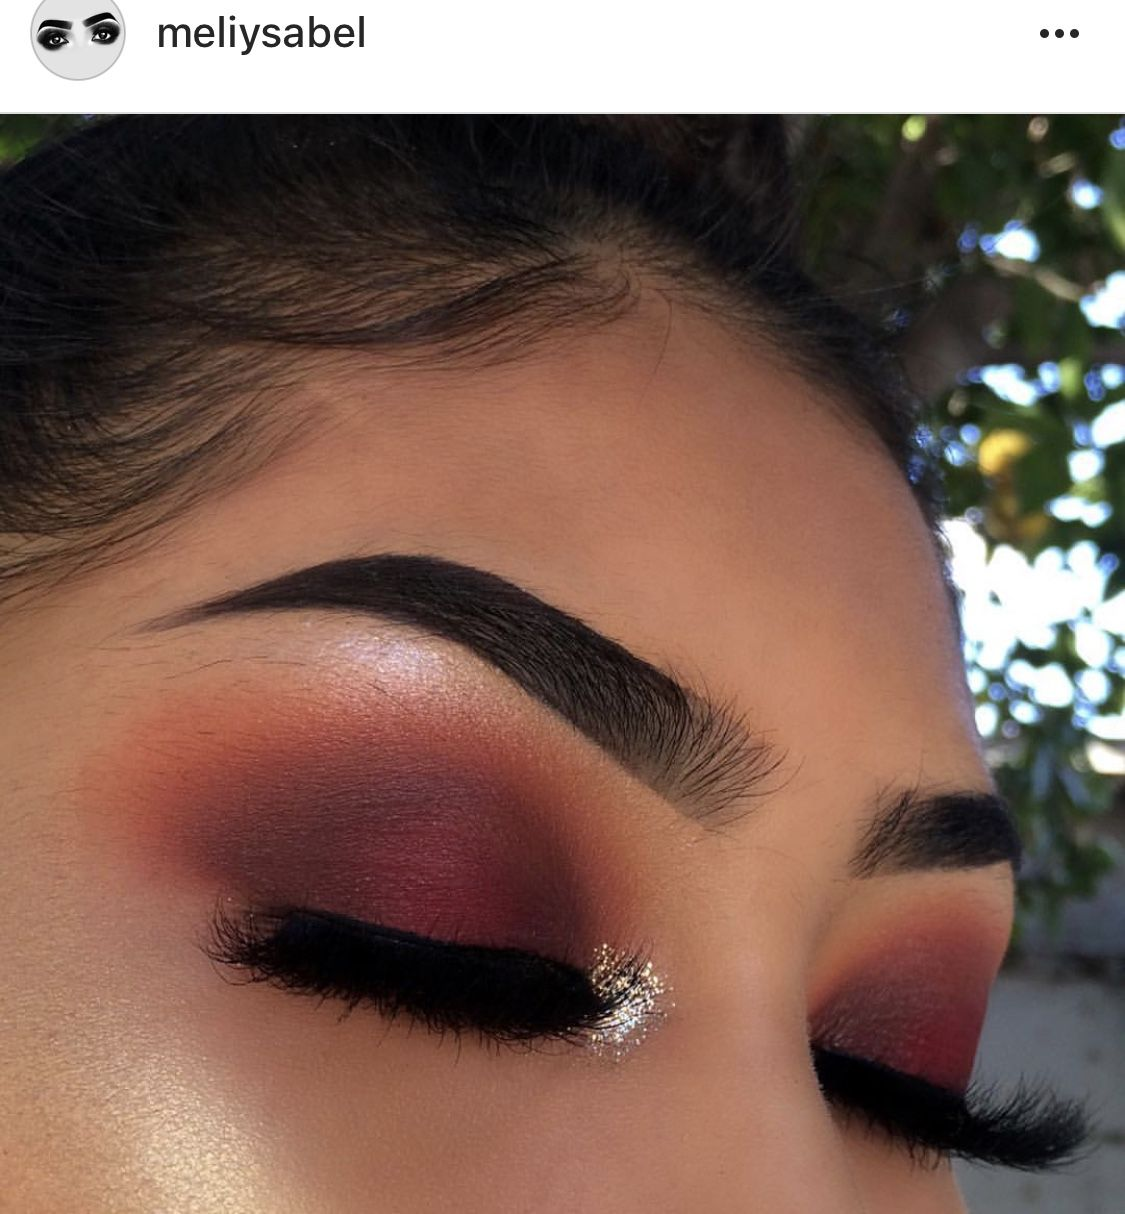 Glitter Neutral Make Up Glam Look Red Smokey Makeup Looks Skin